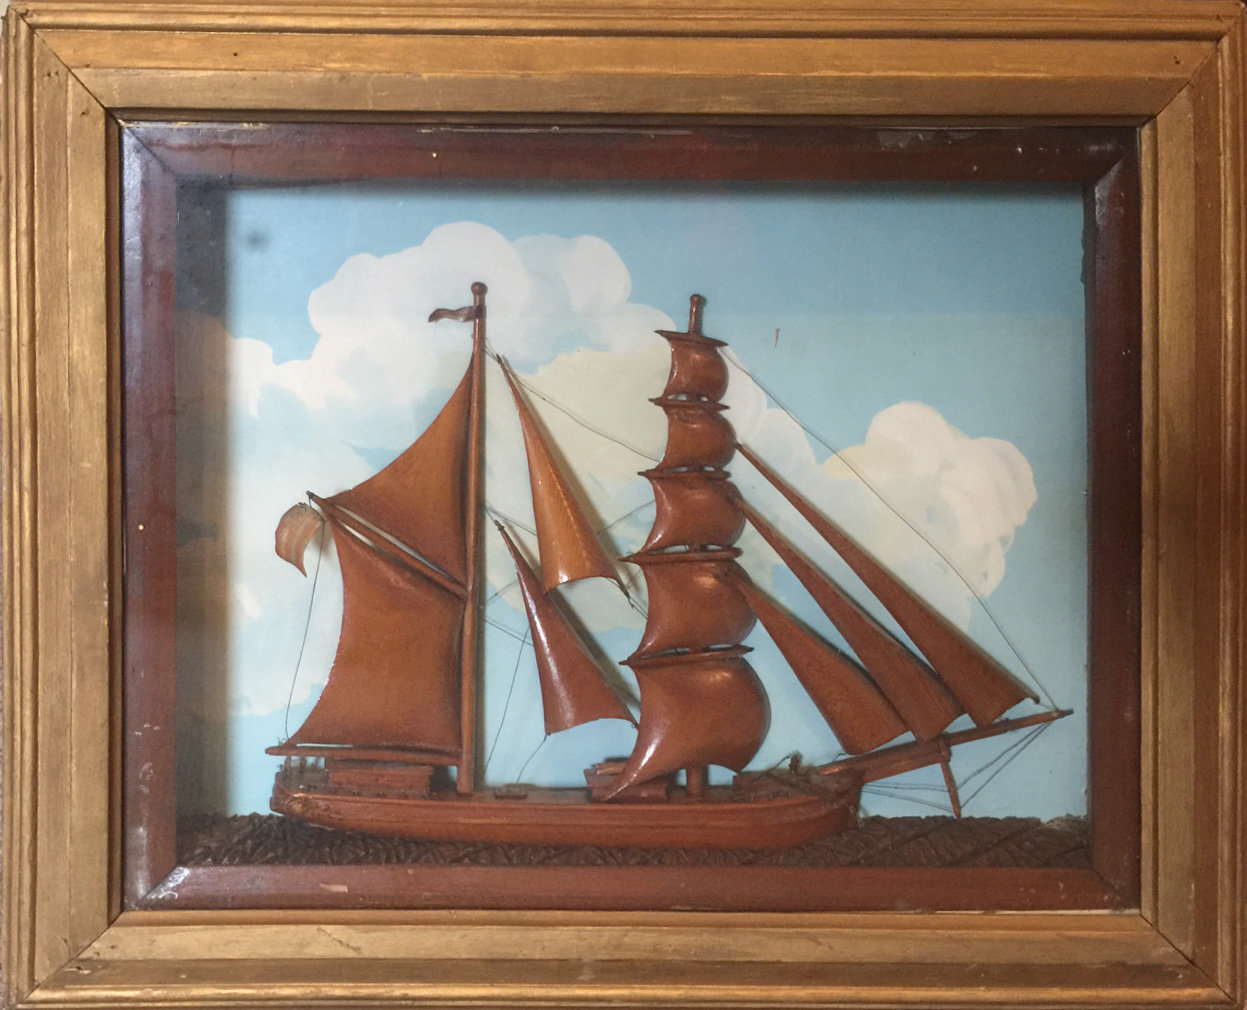 wooden-ship-diorama